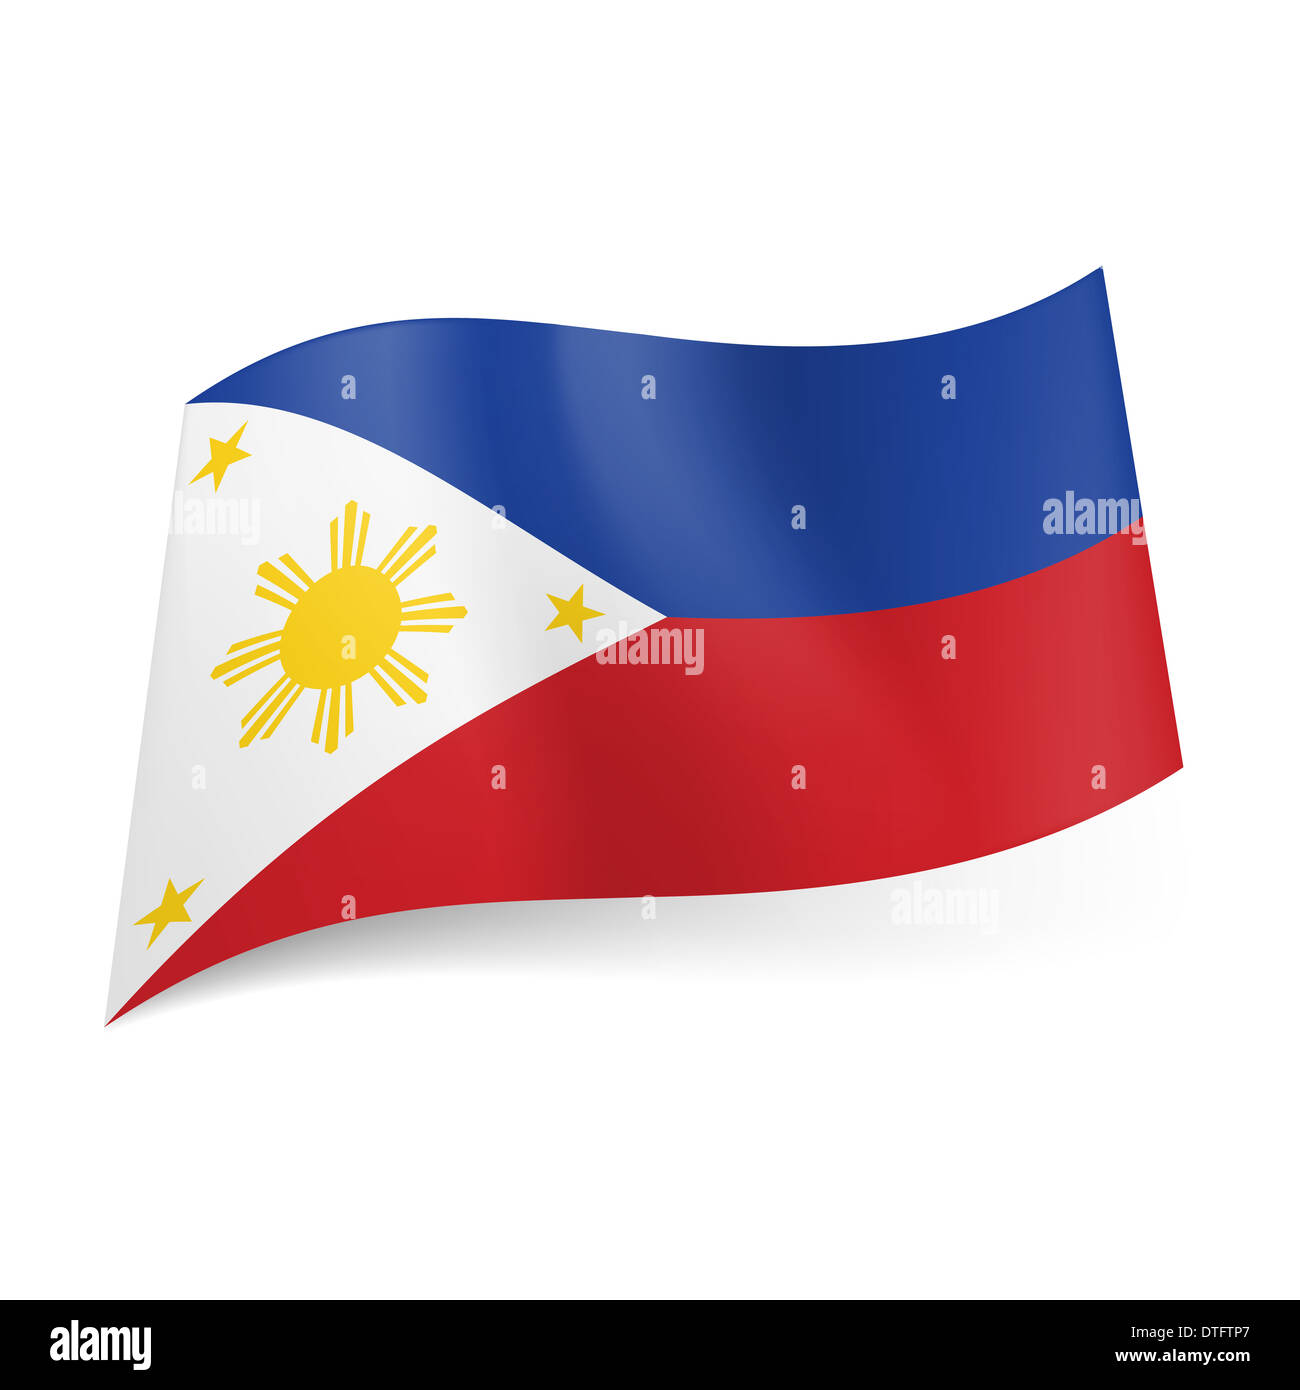 National flag of Philippines: blue and red horizontal ... - photo#12